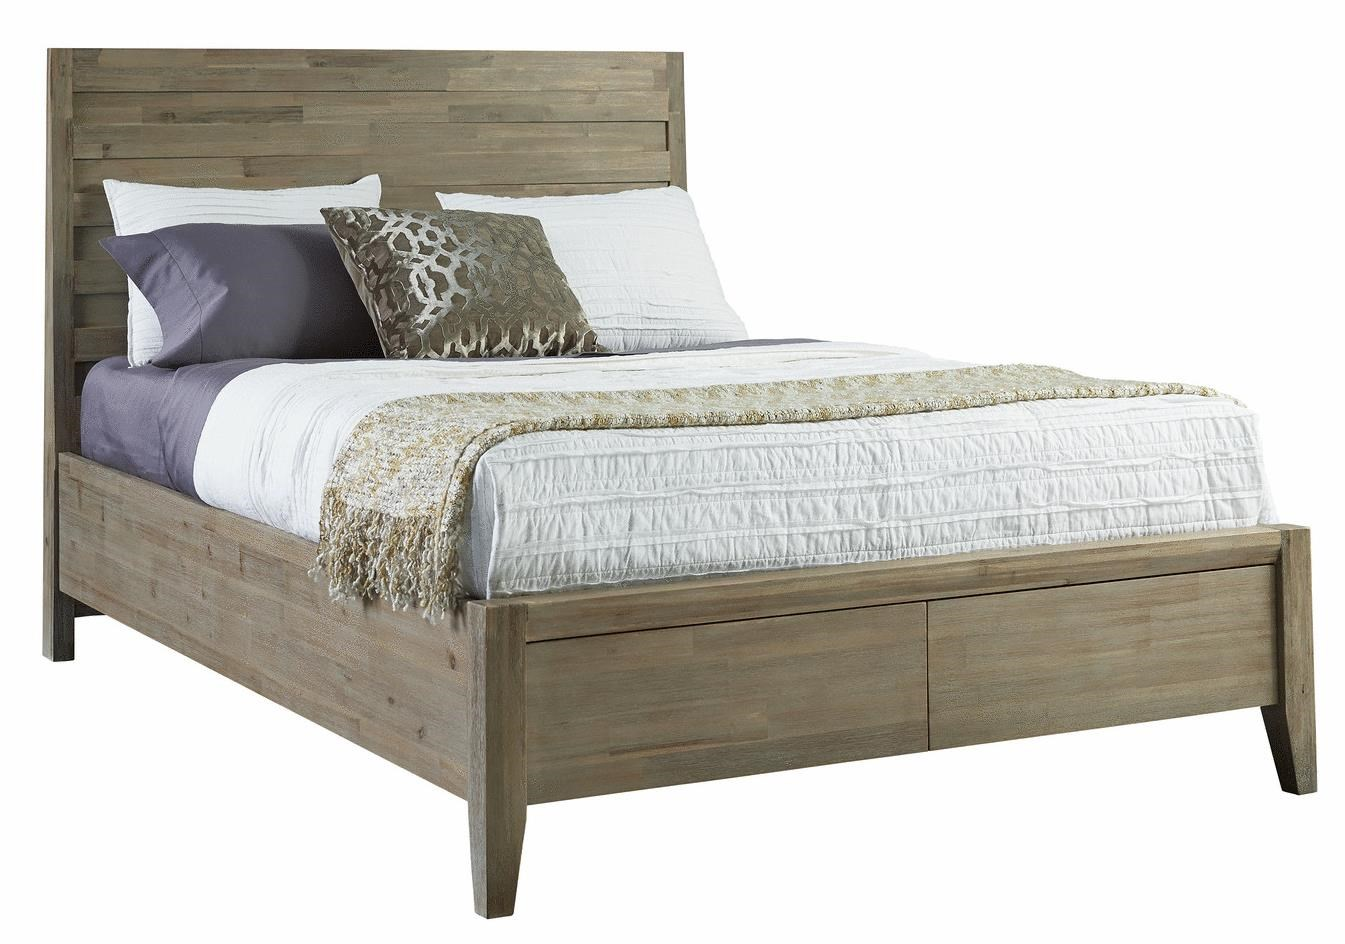 Casablanca Queen Horizontal Slat Storage Bed By Casana